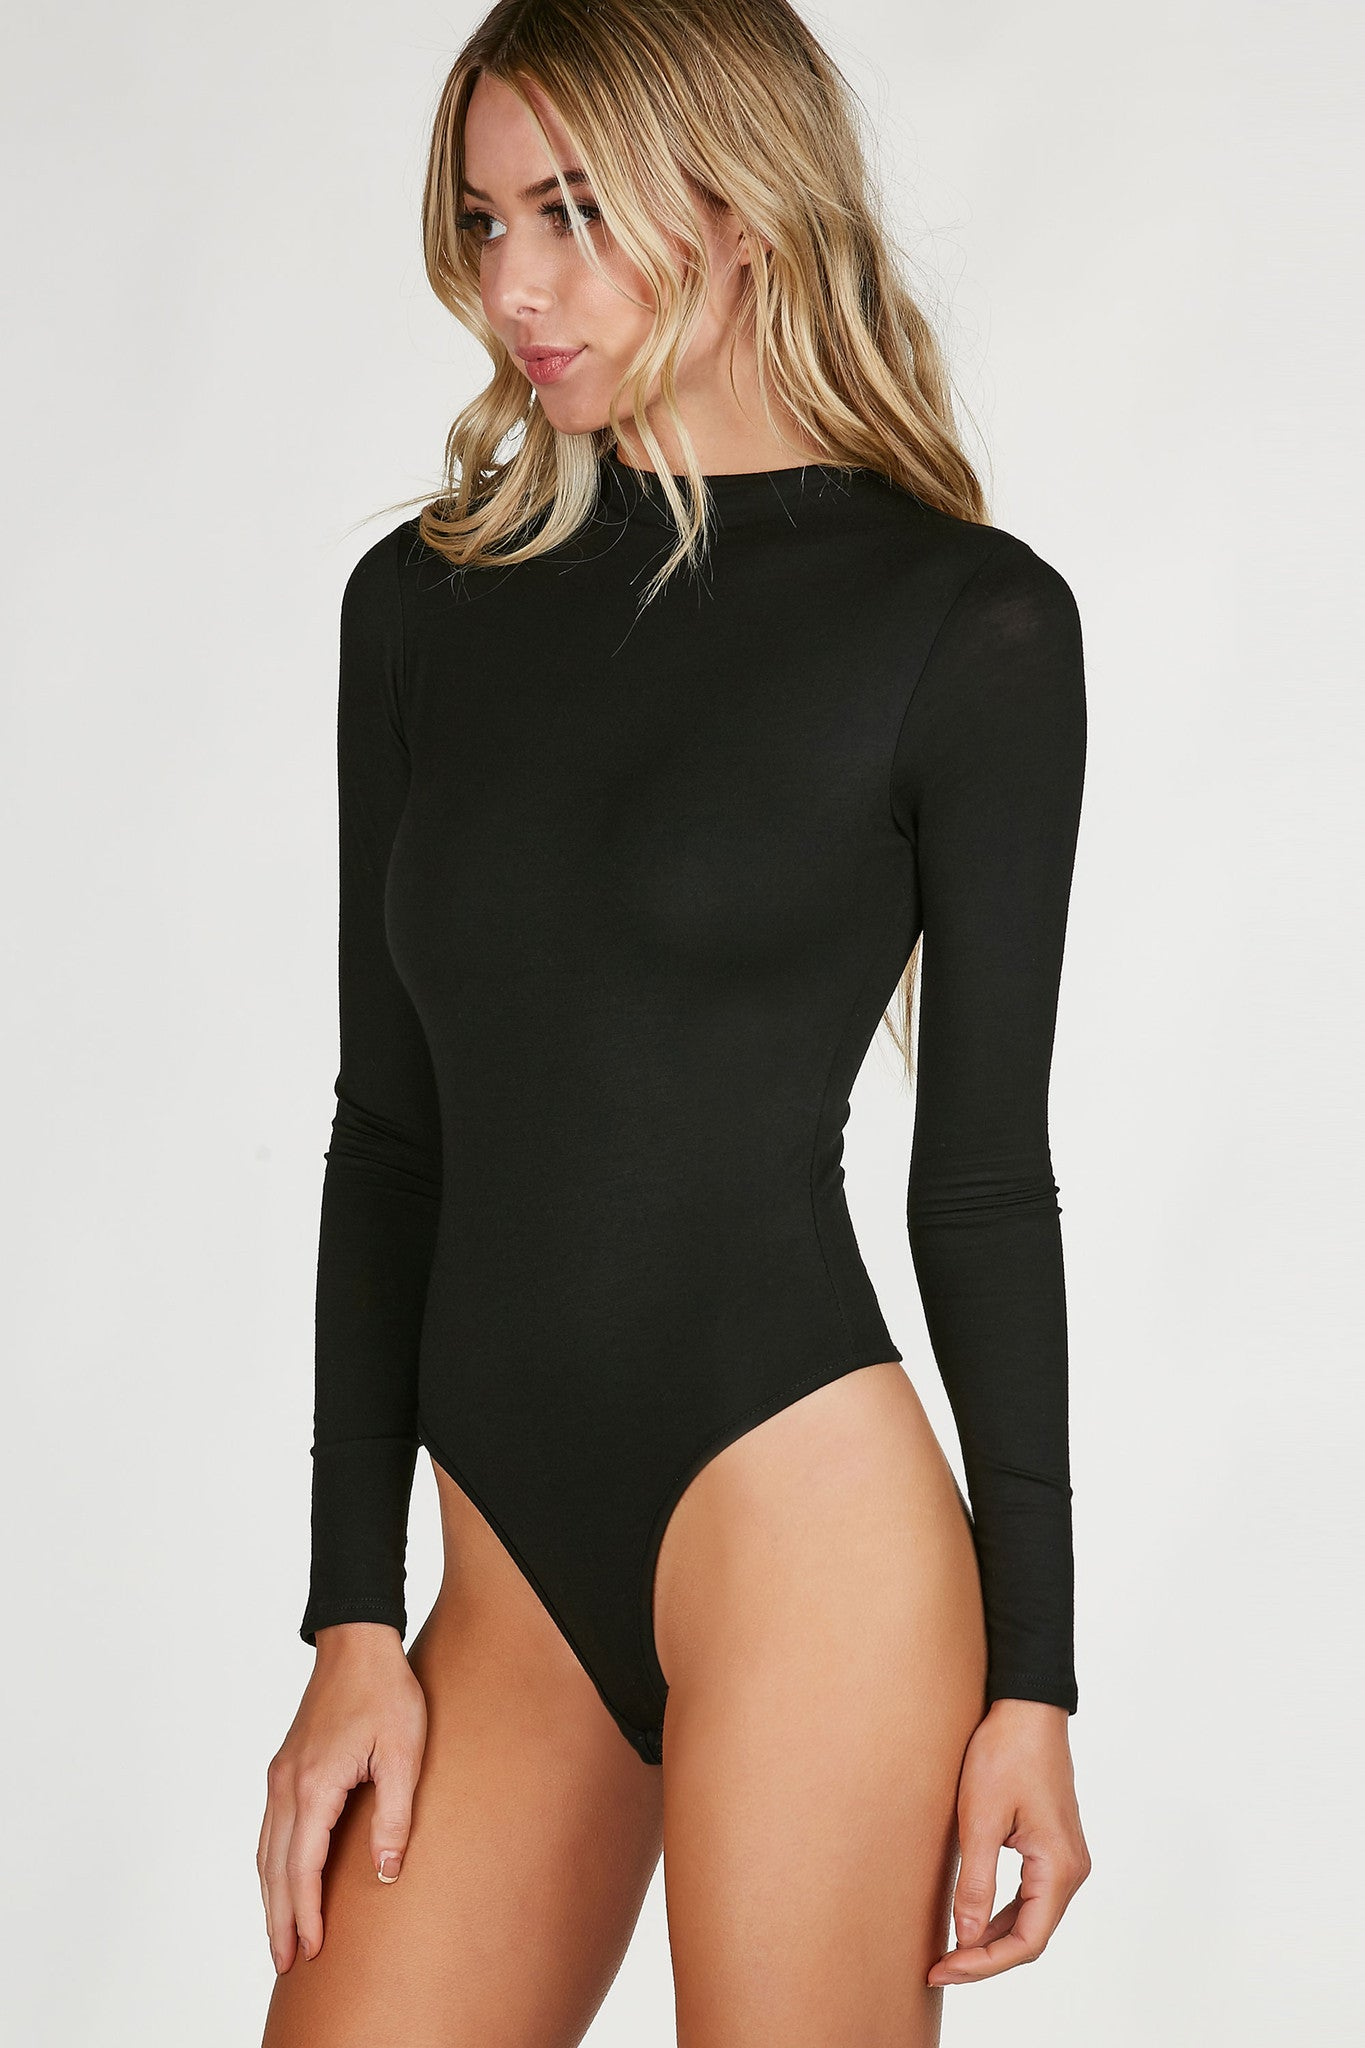 High neck long sleeve bodysuit with slim fit all around. Comfortably stretchy material with cheeky cut and snap button closure.